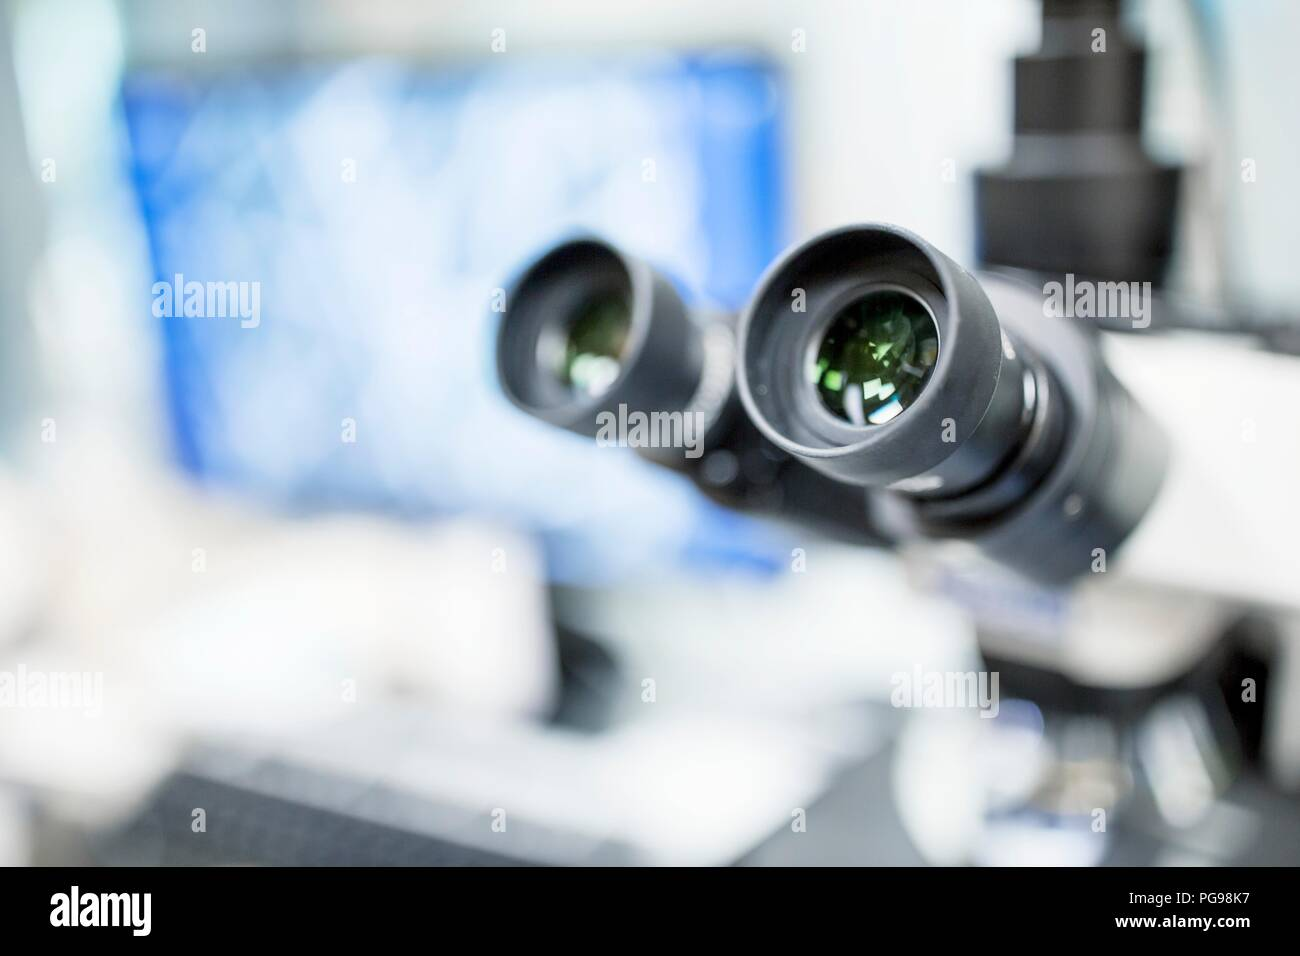 Close-up of a light microscope in a laboratory. - Stock Image